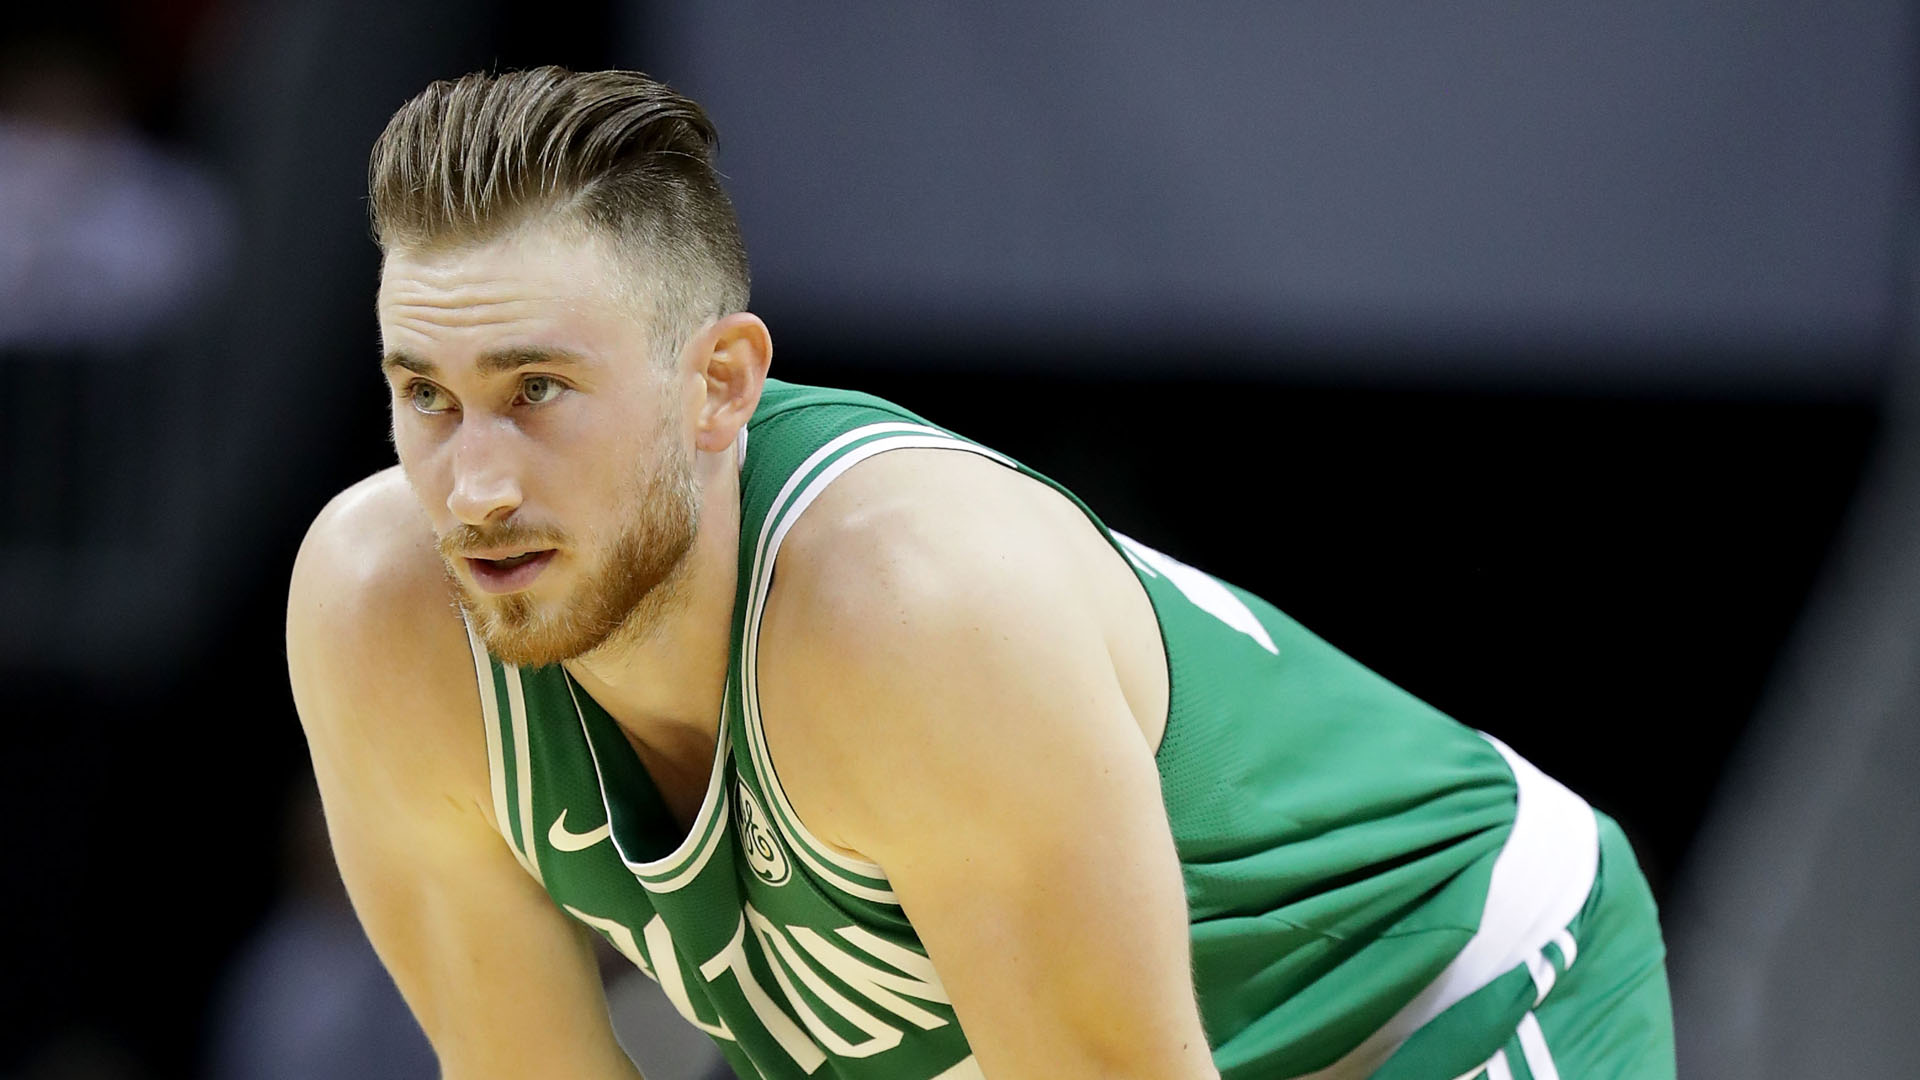 Gordon Hayward's agent indicates he's likely out for the season